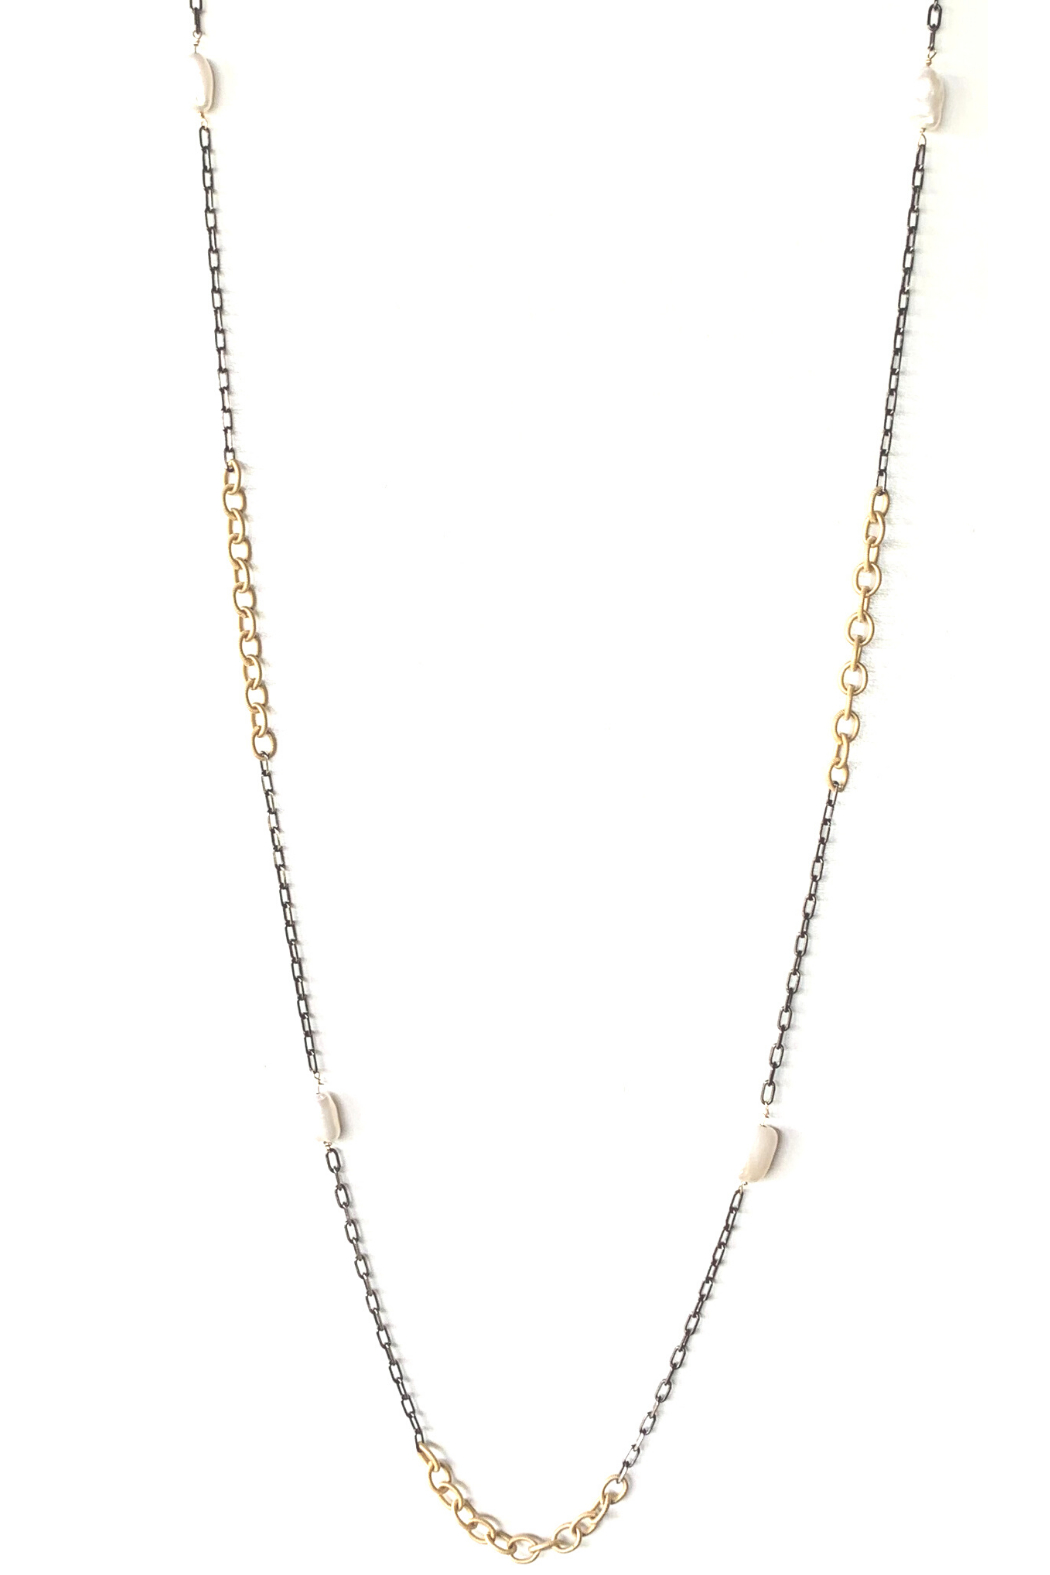 LuLuLisa Mixed Metal and Pearl Chain - Main Image